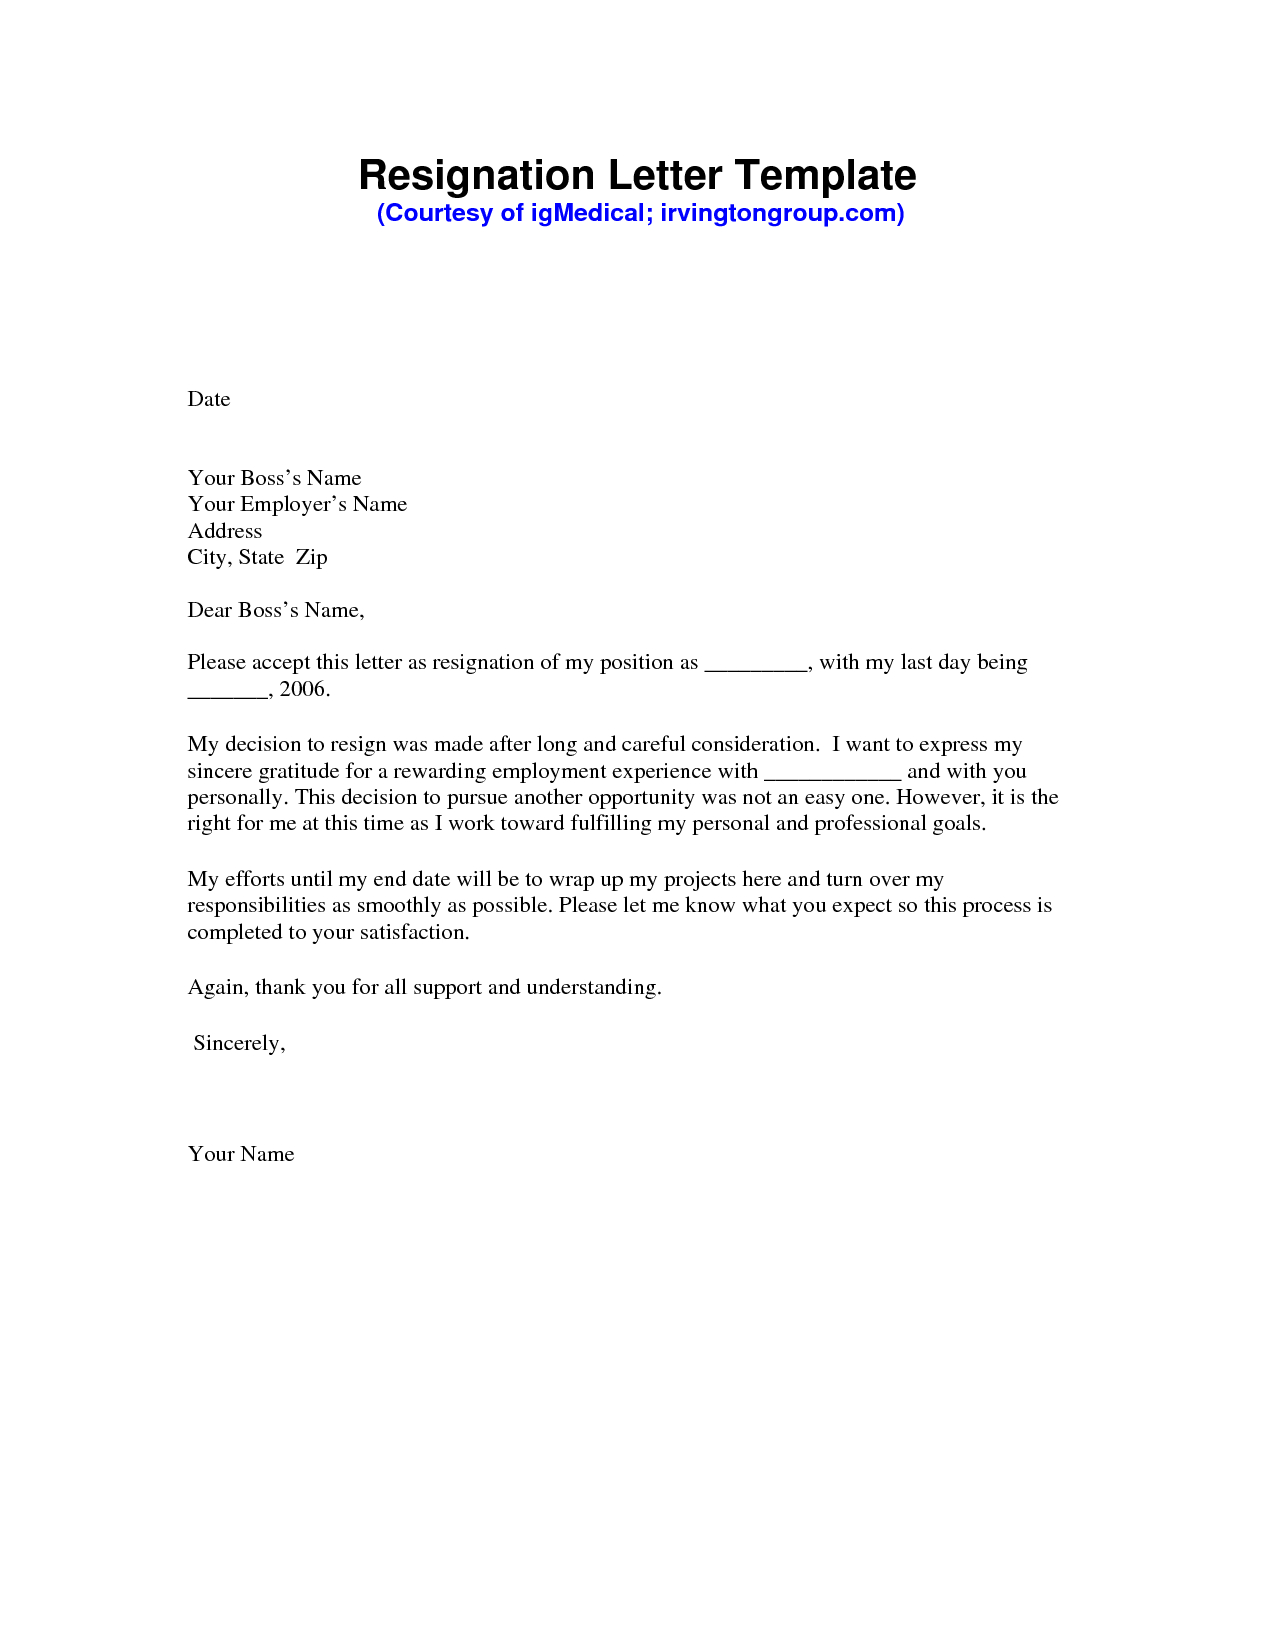 Resignation Letter Template Free Download - Resignation Letter Sample Pdf Resignation Letter